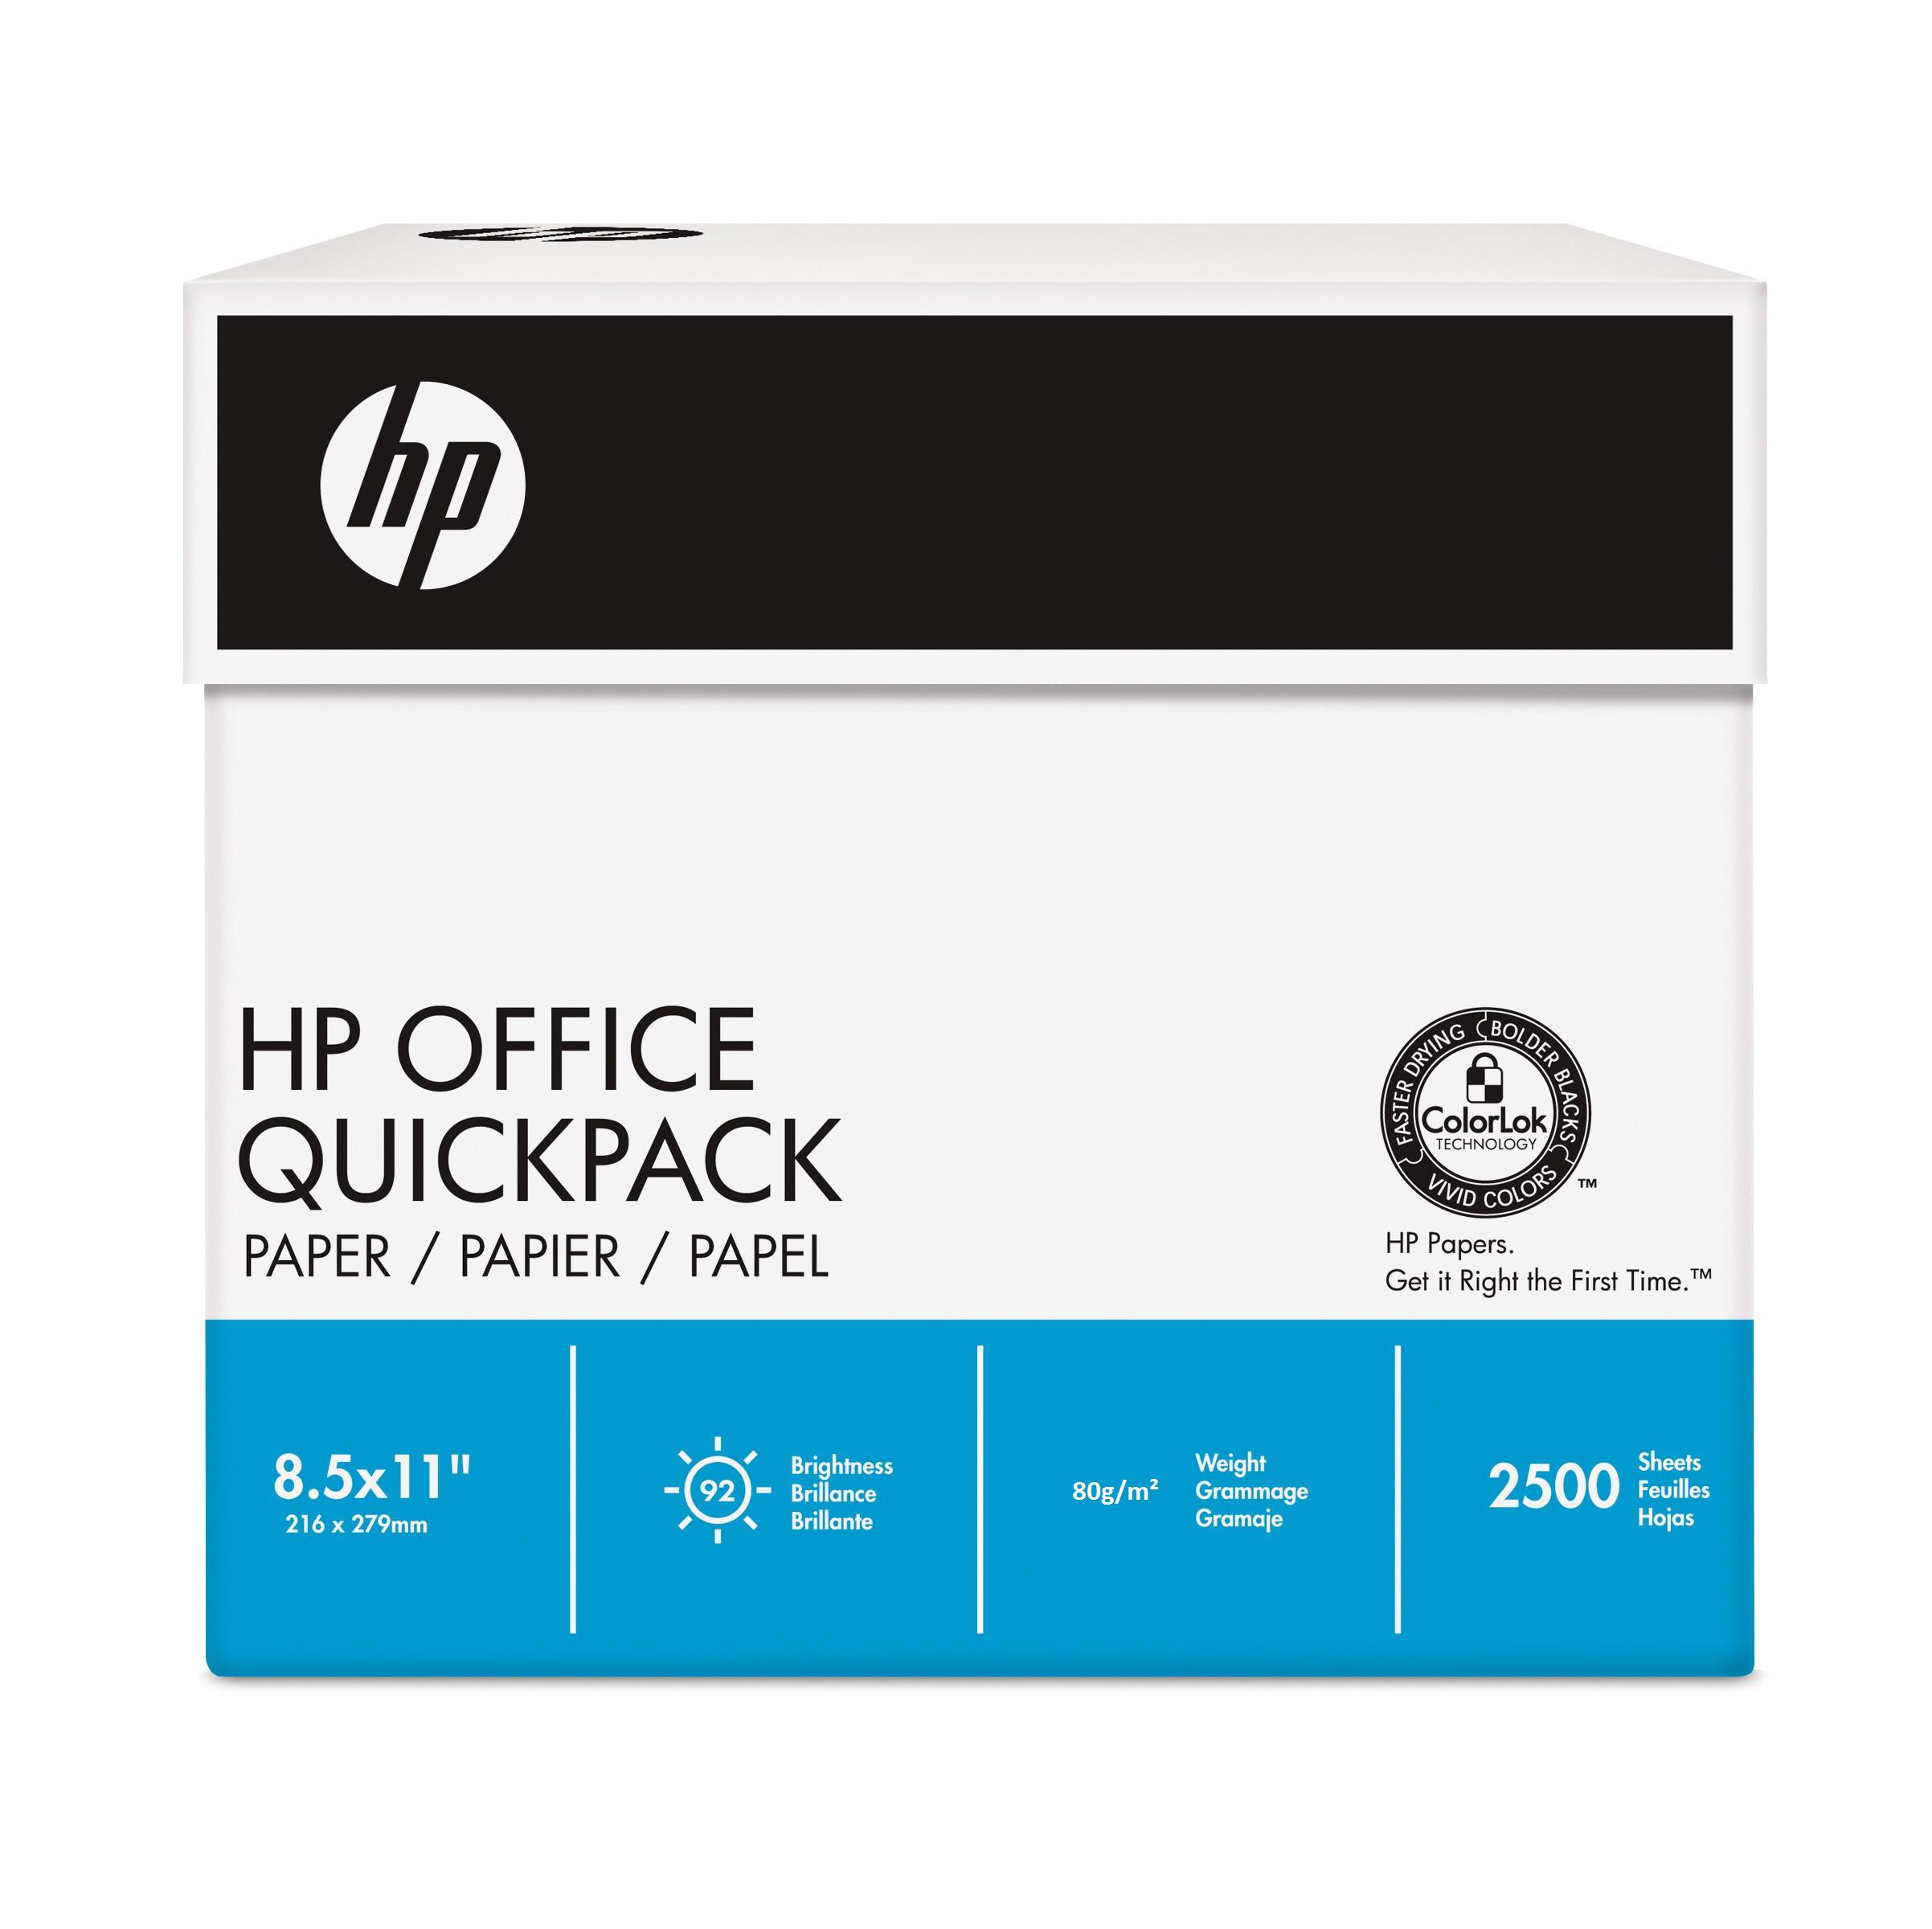 Hewlett Packard [HP] Office Paper Multifunction No Wrap 80gsm A4 White Ref HPF0317QPCL [2500 Sheets]